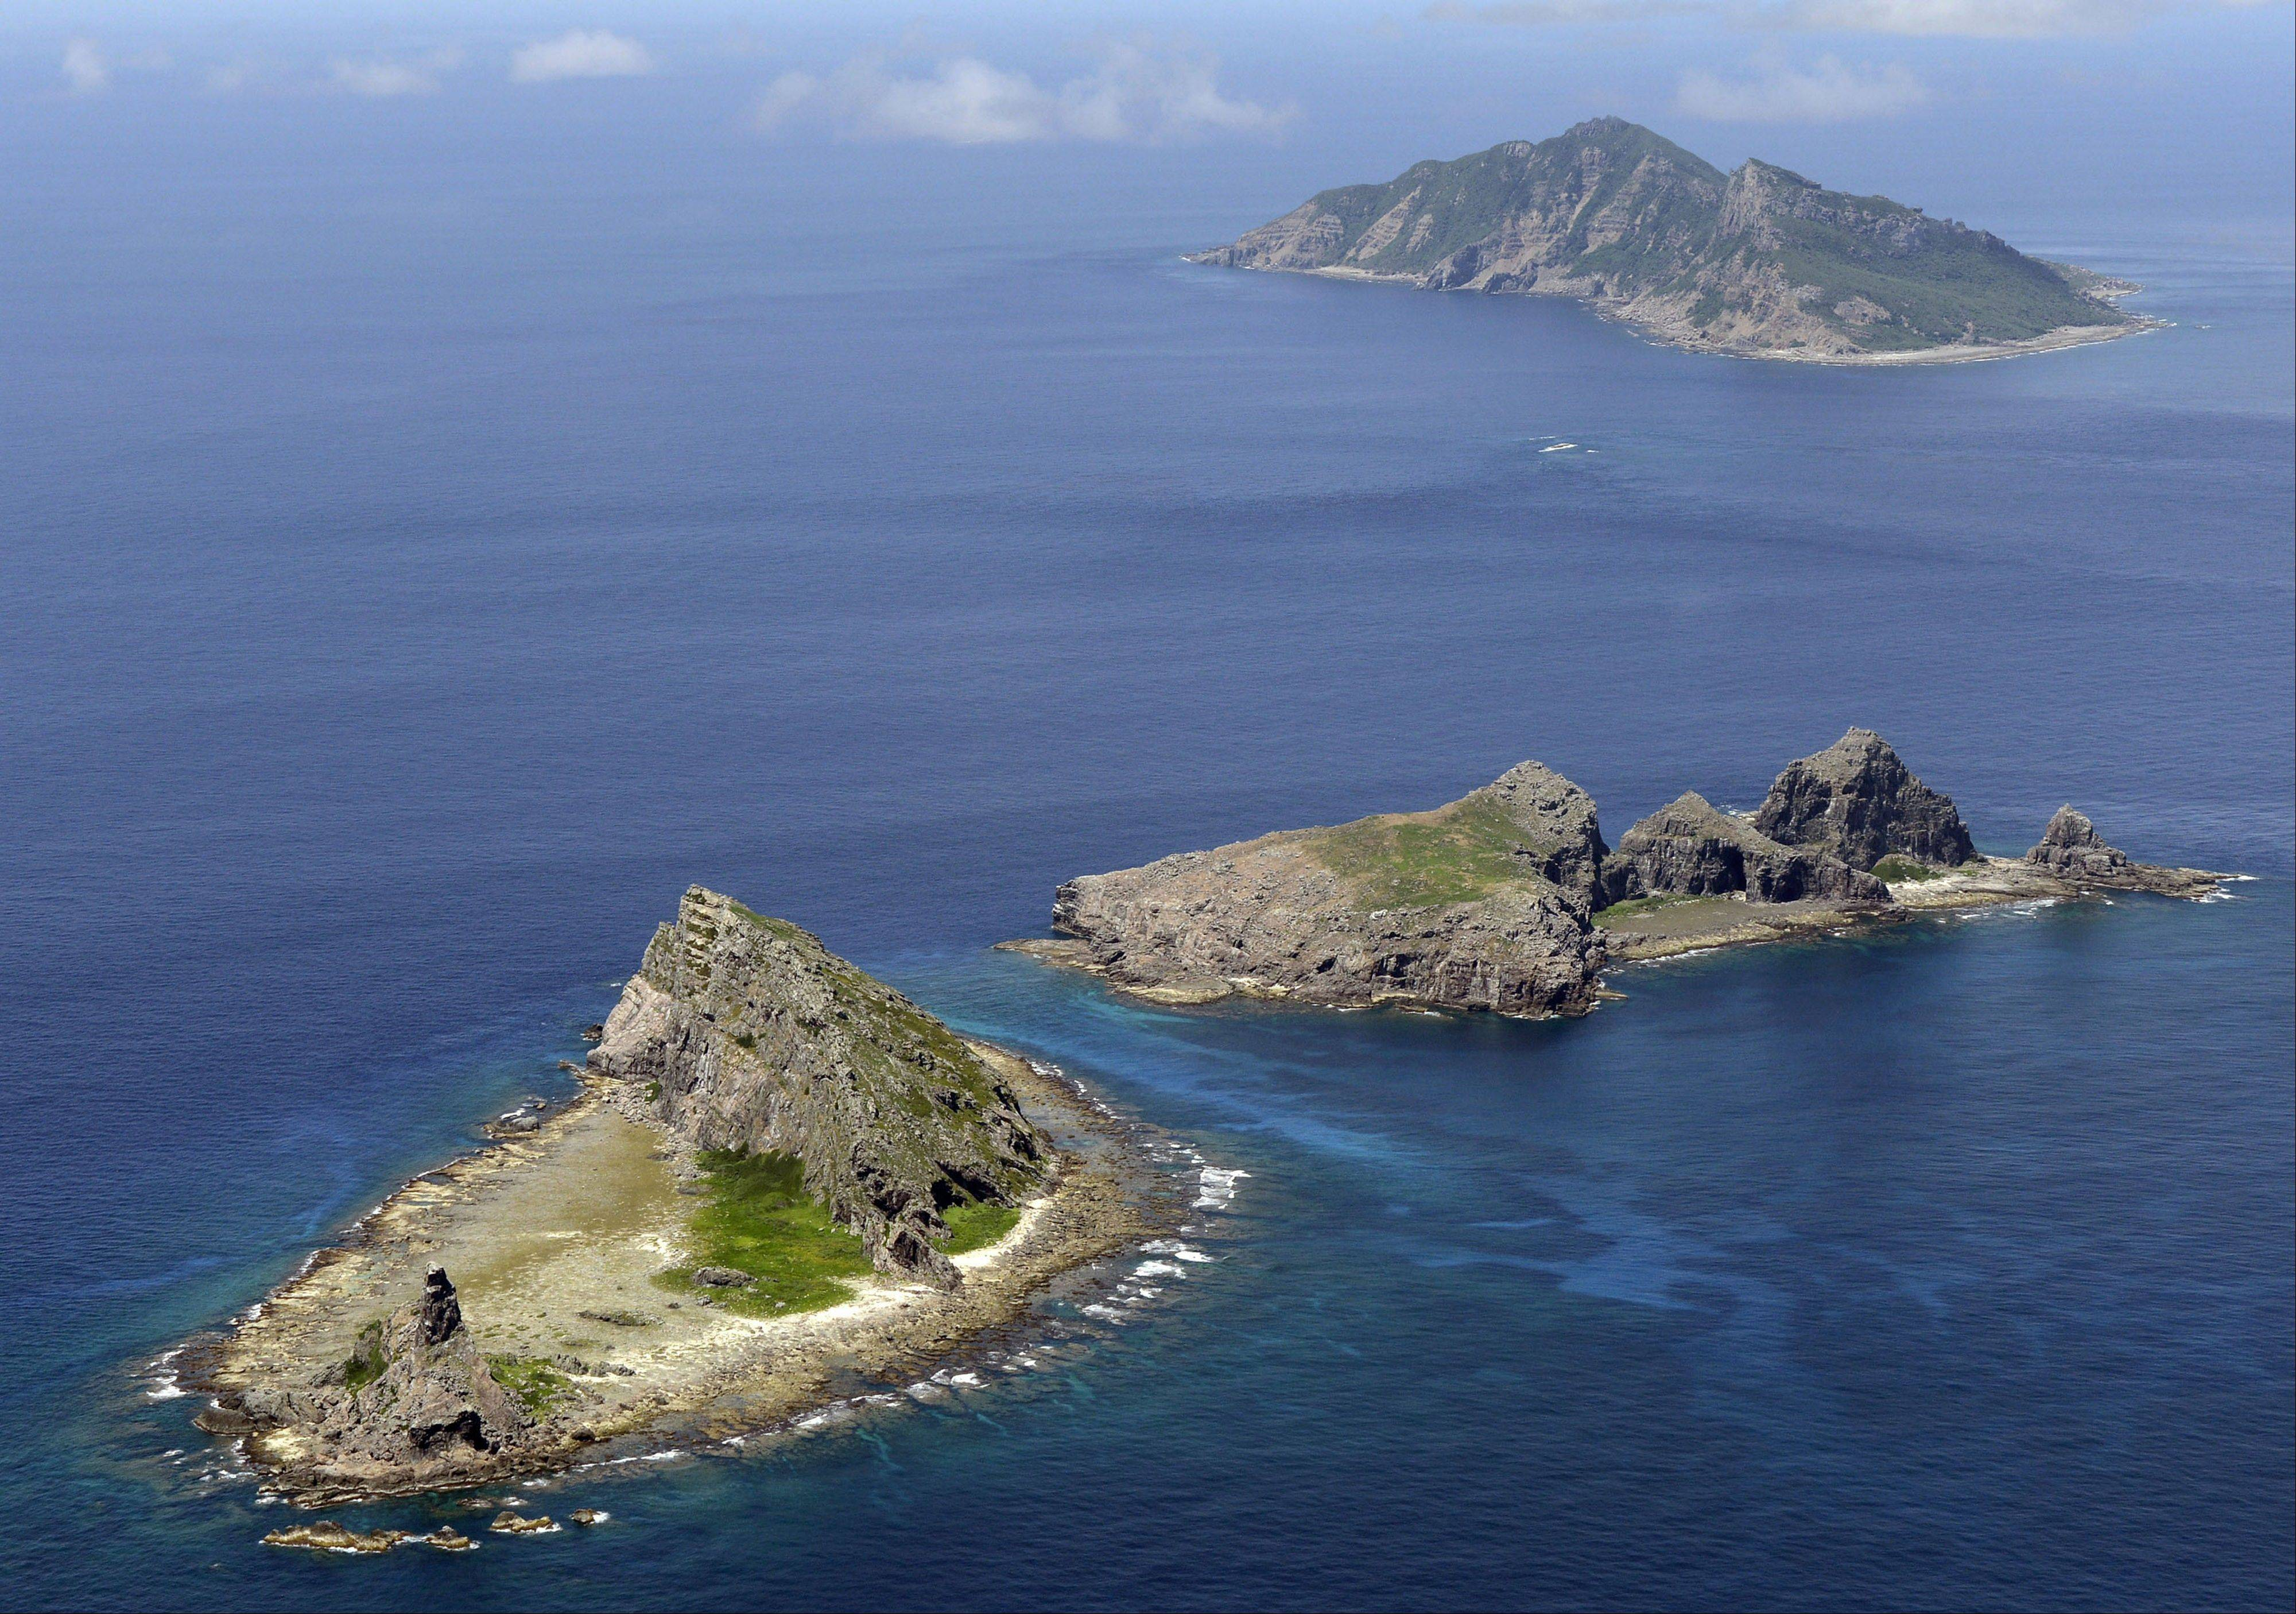 Associated Press/2012 photoThe tiny islands in the East China Sea, called Senkaku in Japanese and Diaoyu in Chinese, are center stage in a dispute betweem China and Japan.